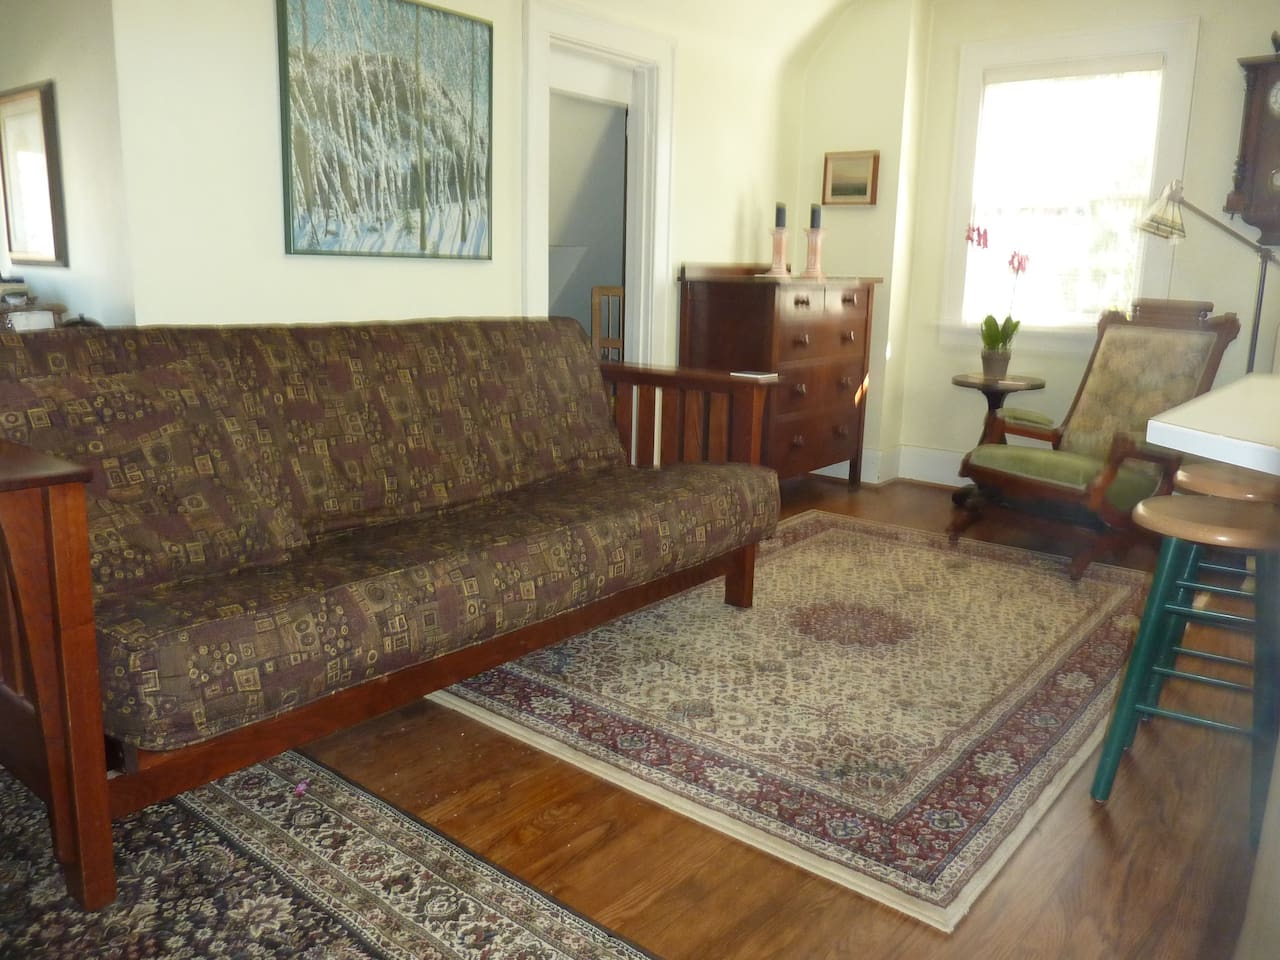 Looking north east from the entry way, with the futon made into a couch